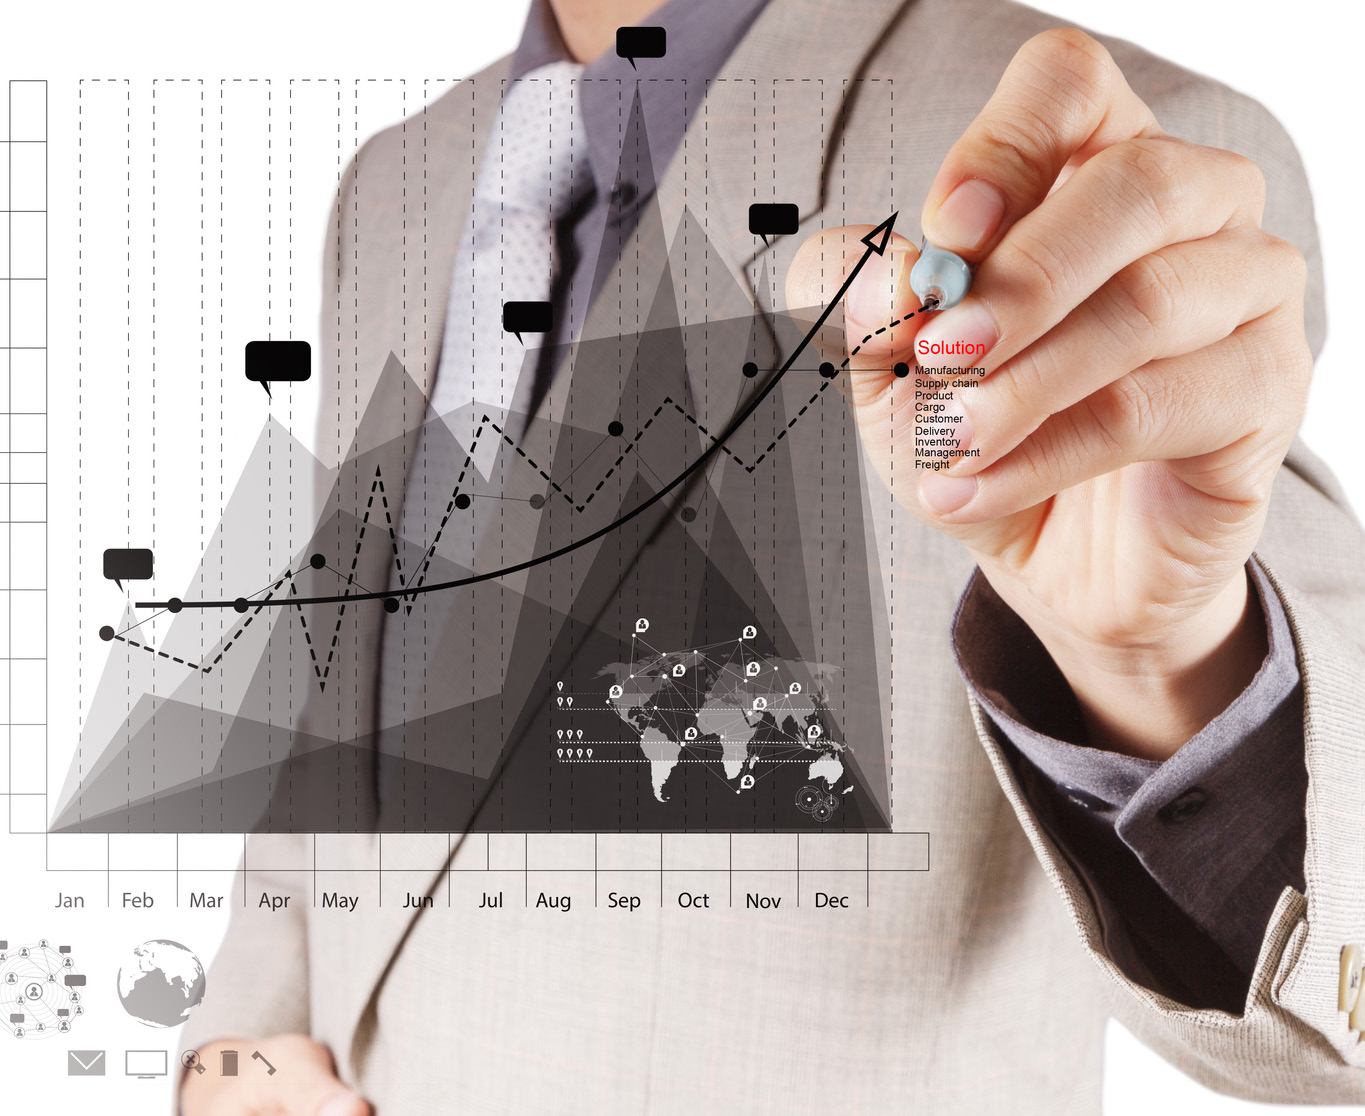 Five Keys to Successful Financial Management for Growing Businesses